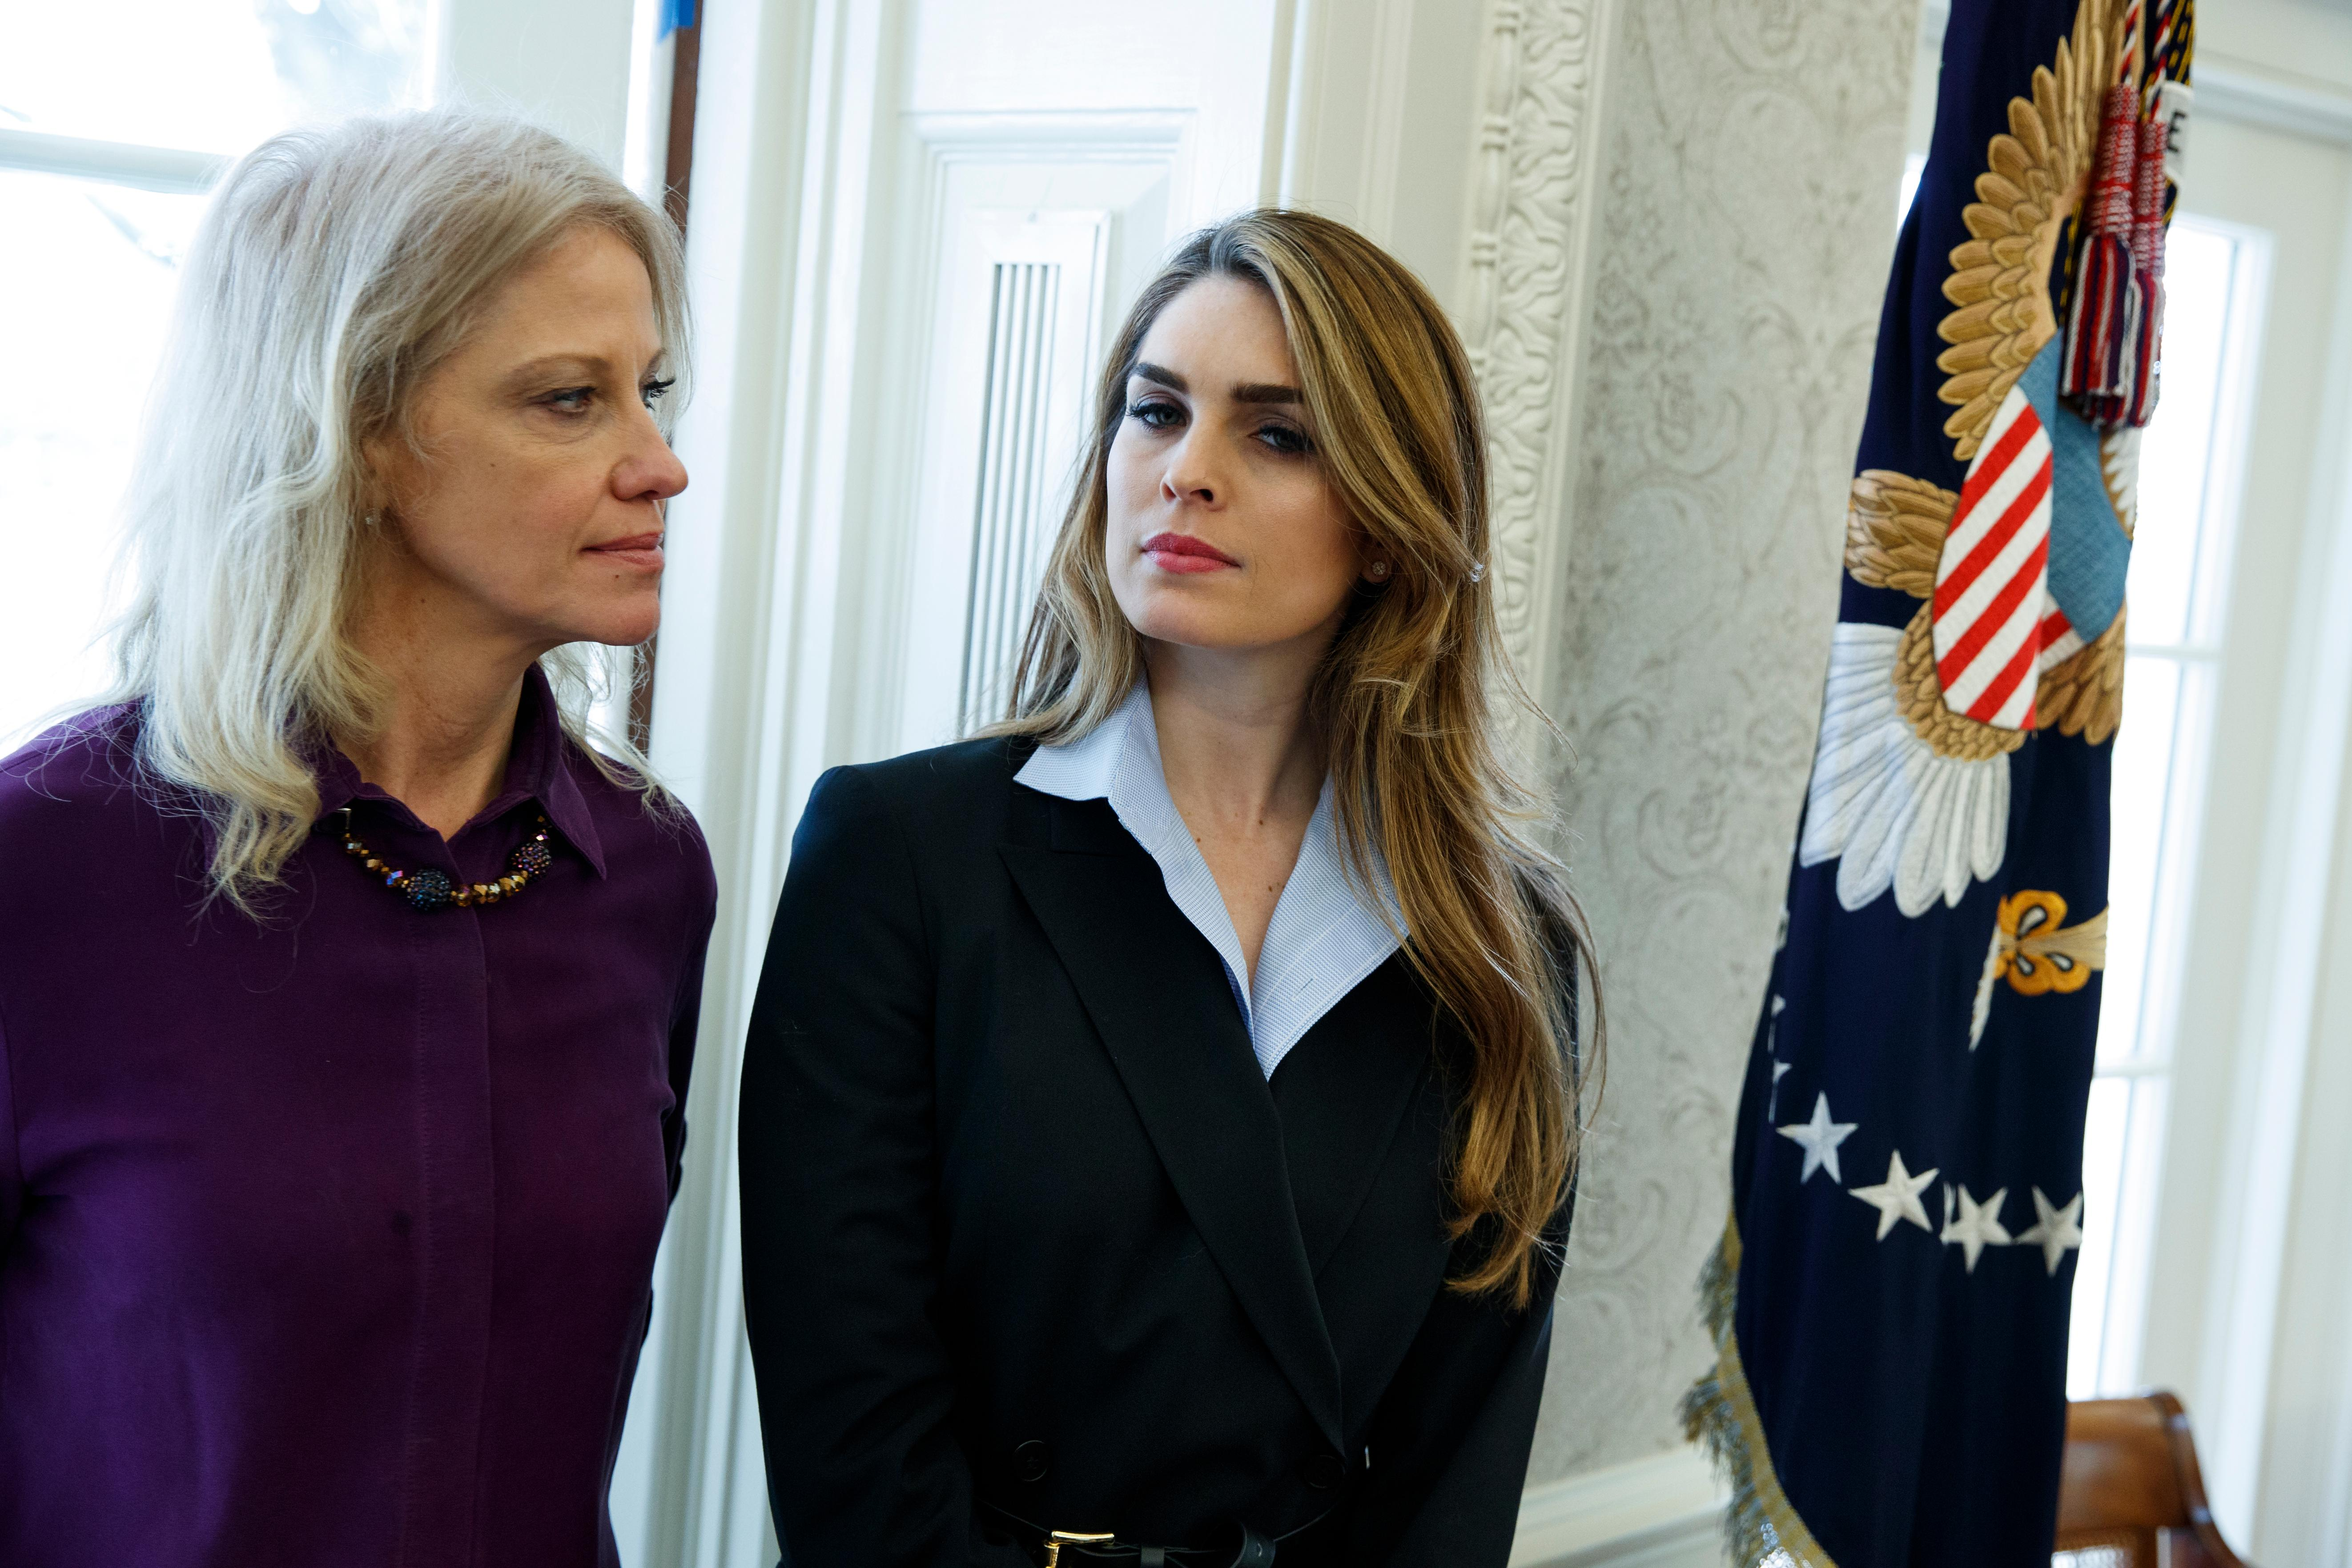 White House Communications Director Hope Hicks, right, stands with White House senior adviser Kellyanne Conway during a meeting in the Oval Office between President Donald Trump and Shane Bouvet, Friday, Feb. 9, 2018, in Washington. (AP Photo/Evan Vucci)